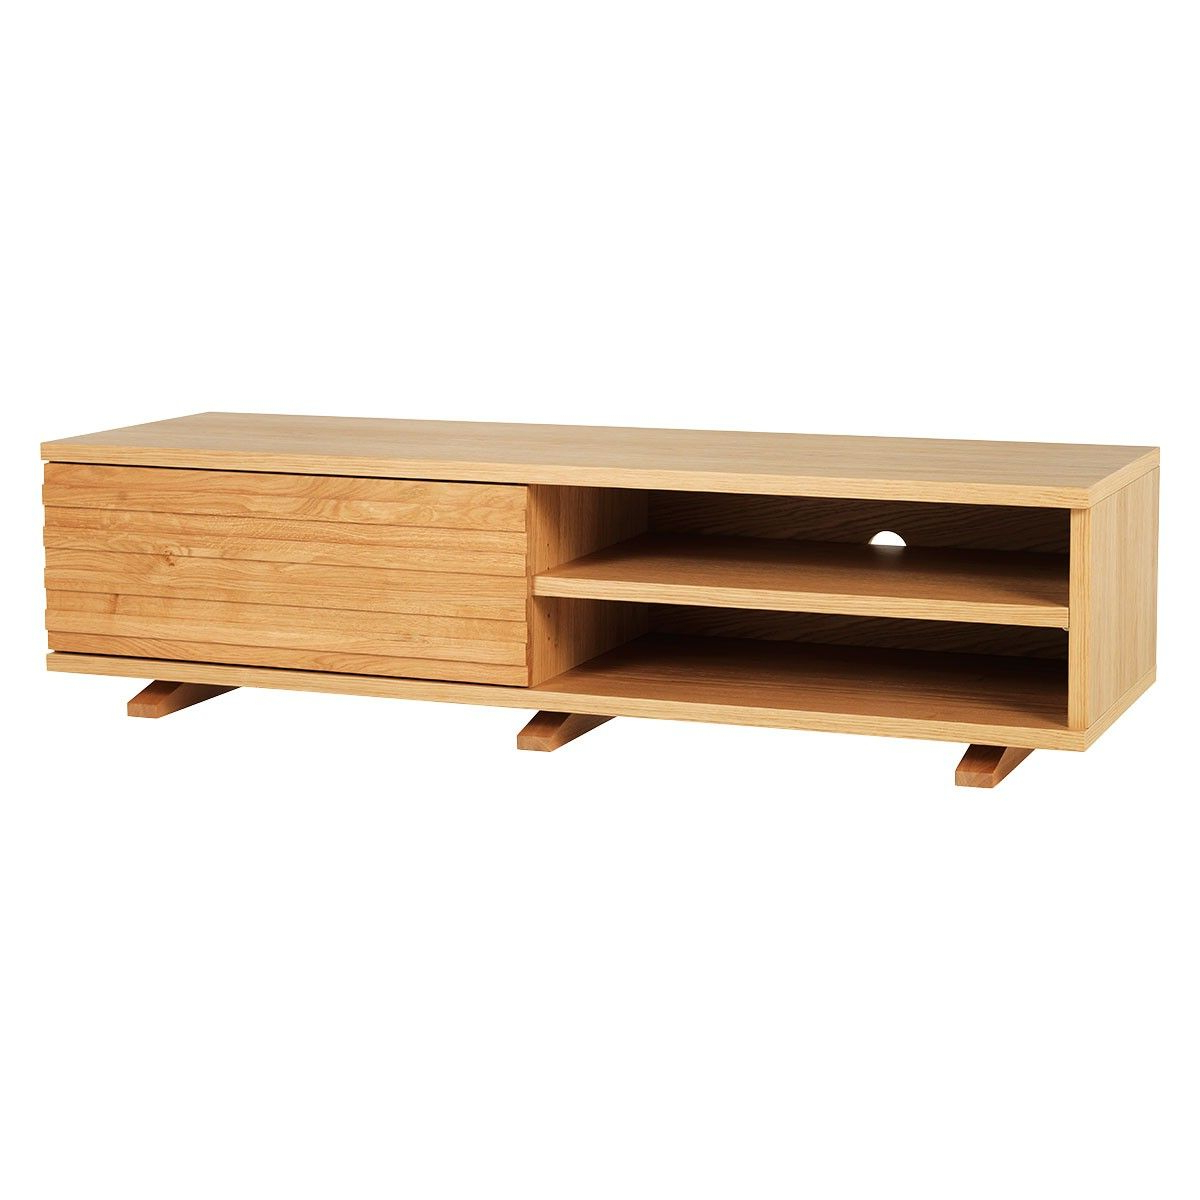 2018 Scandi 2 Drawer White Tv Media Unit Stands In Enzo Oak Tv Stand With One Storage Drawer £495 – Also (View 8 of 10)